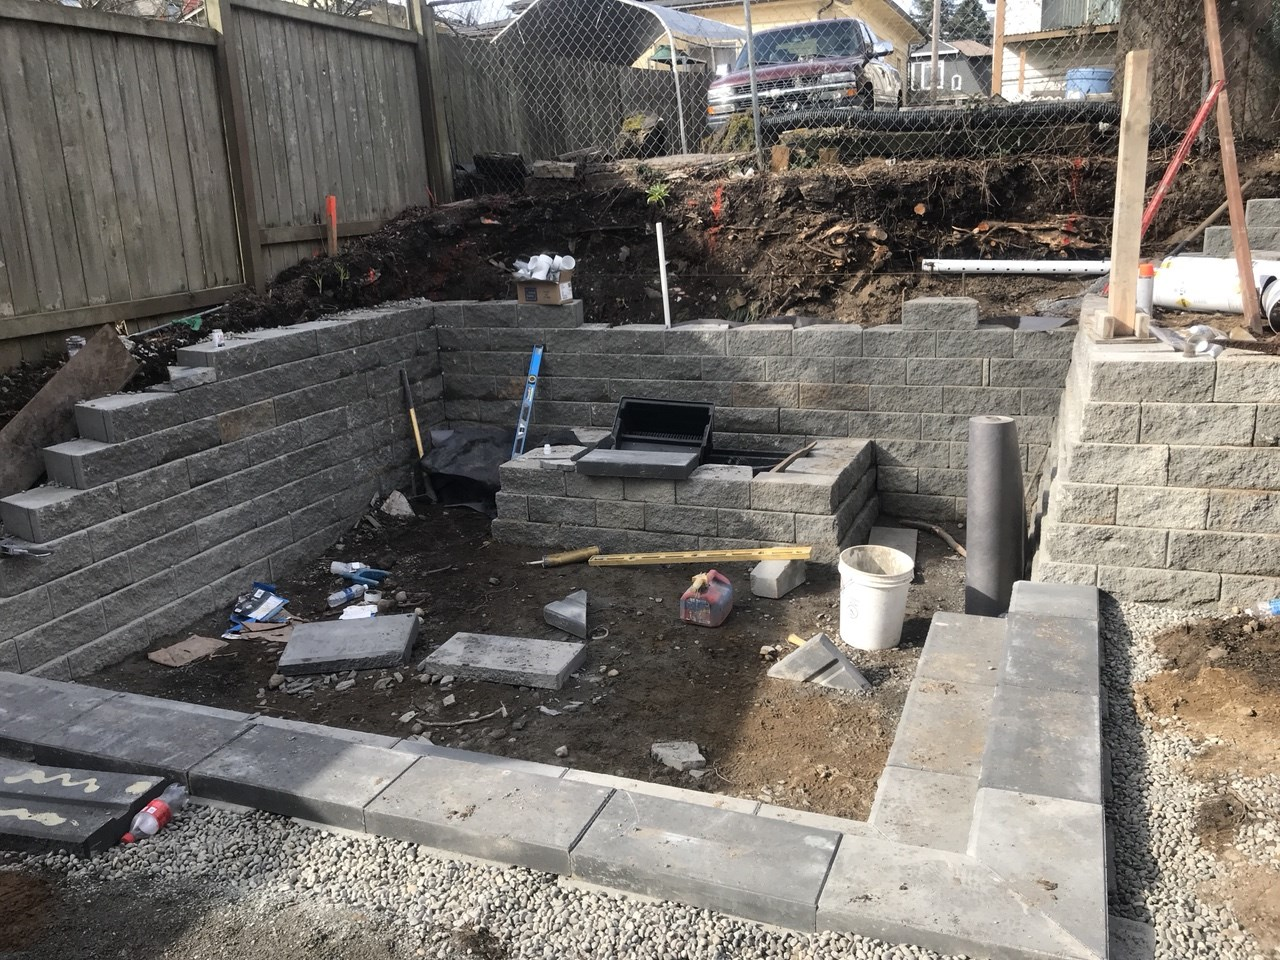 A backyard in the process of renovation.